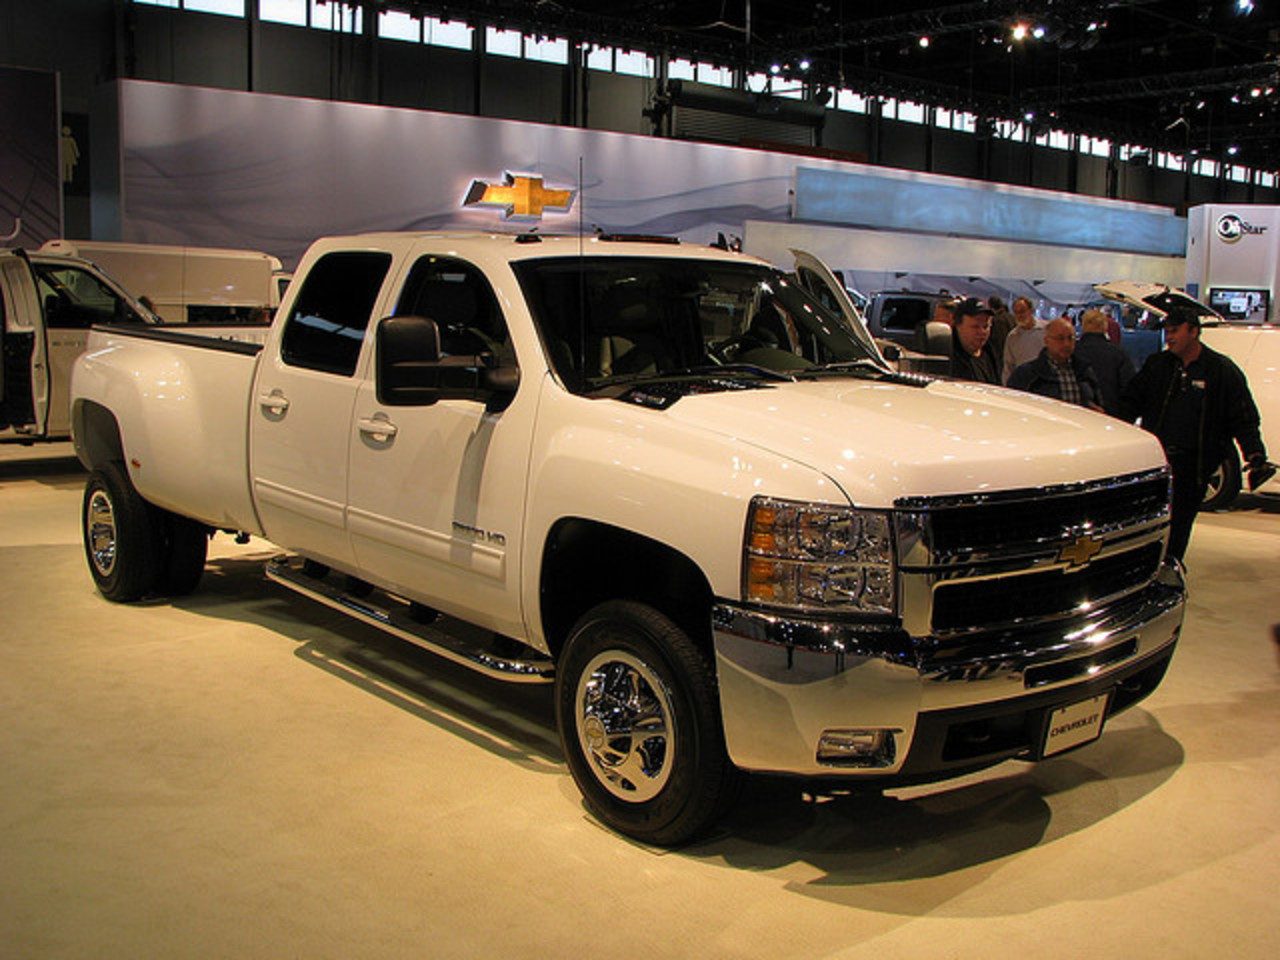 Chevrolet Silverado 3500 HD | Flickr - Photo Sharing!